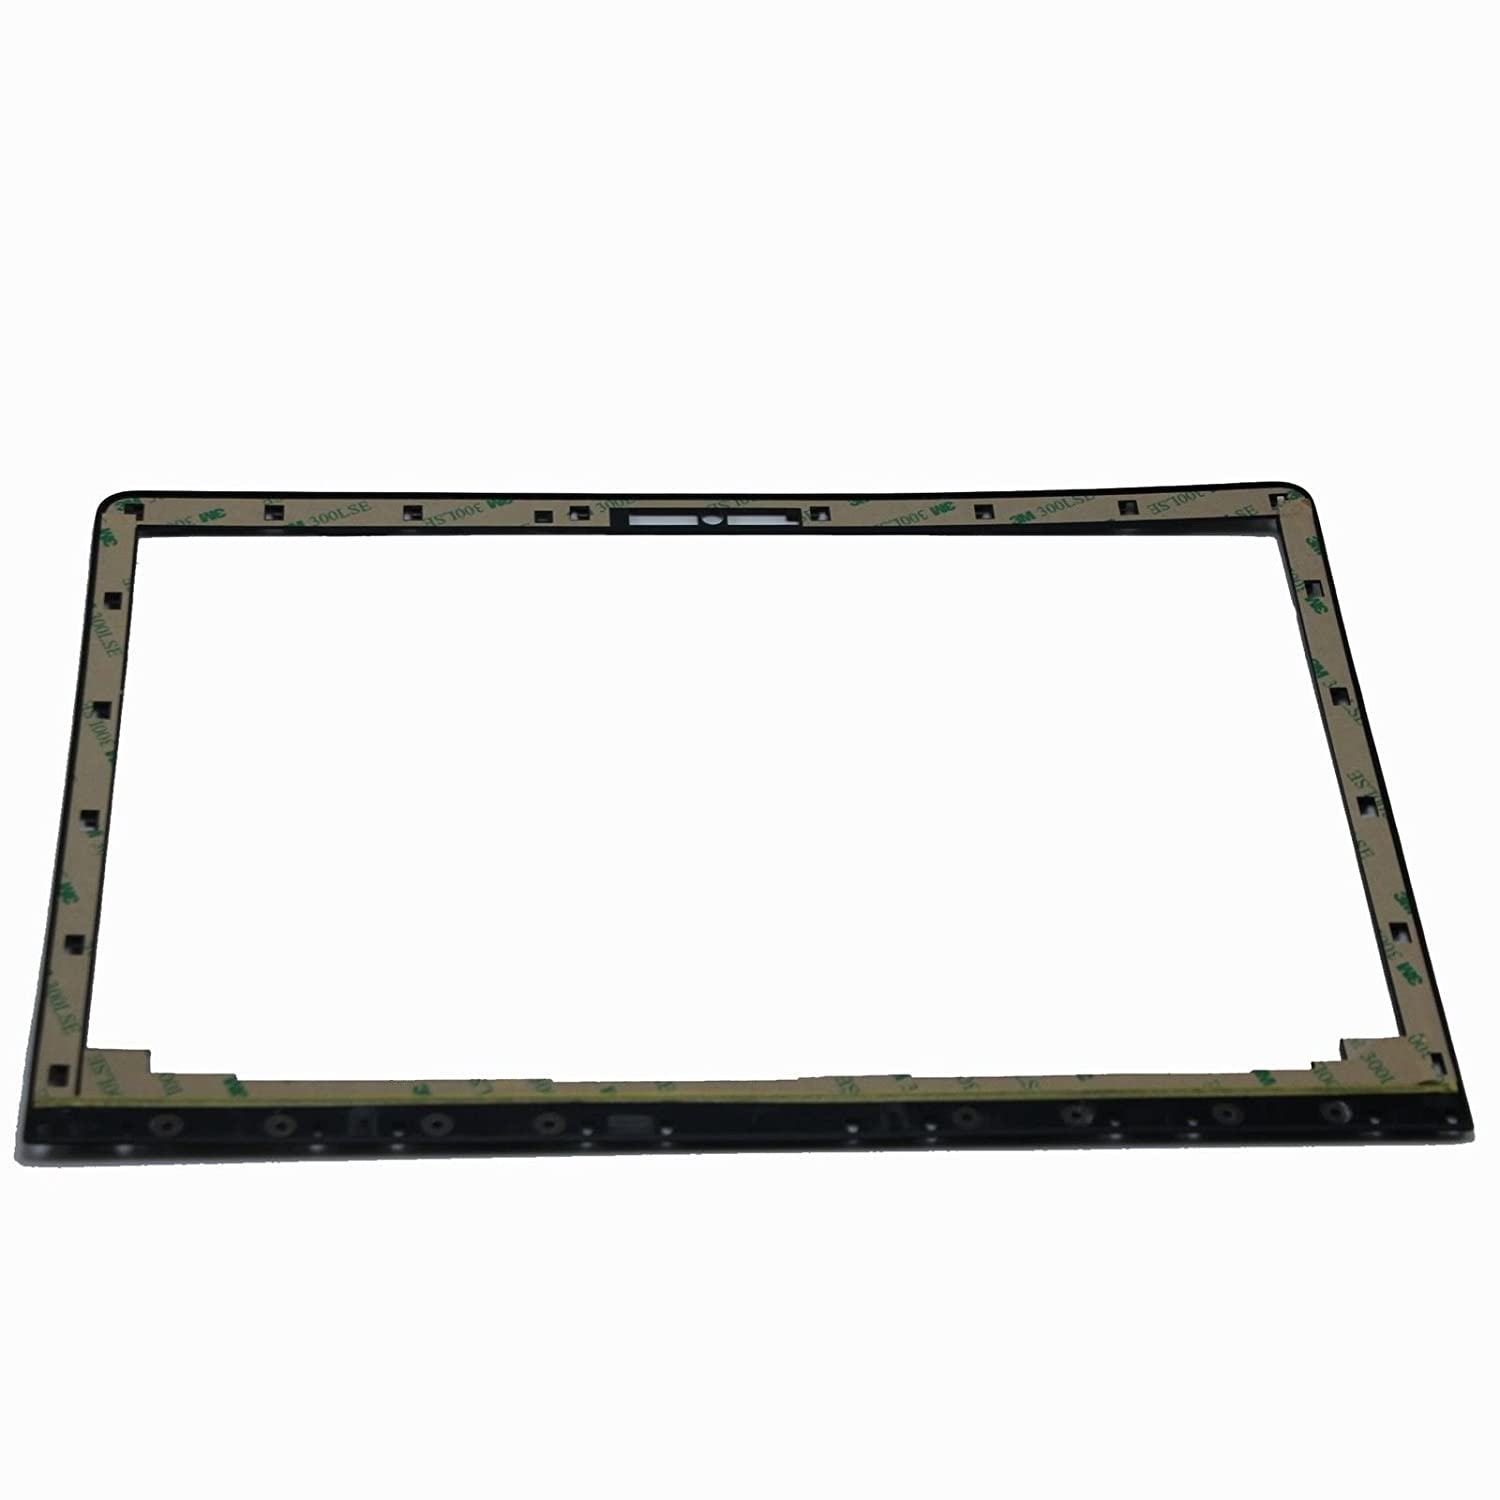 Amazon.com: LCDOLED 13.3 inch Laptop Replacement Front Bezel ...